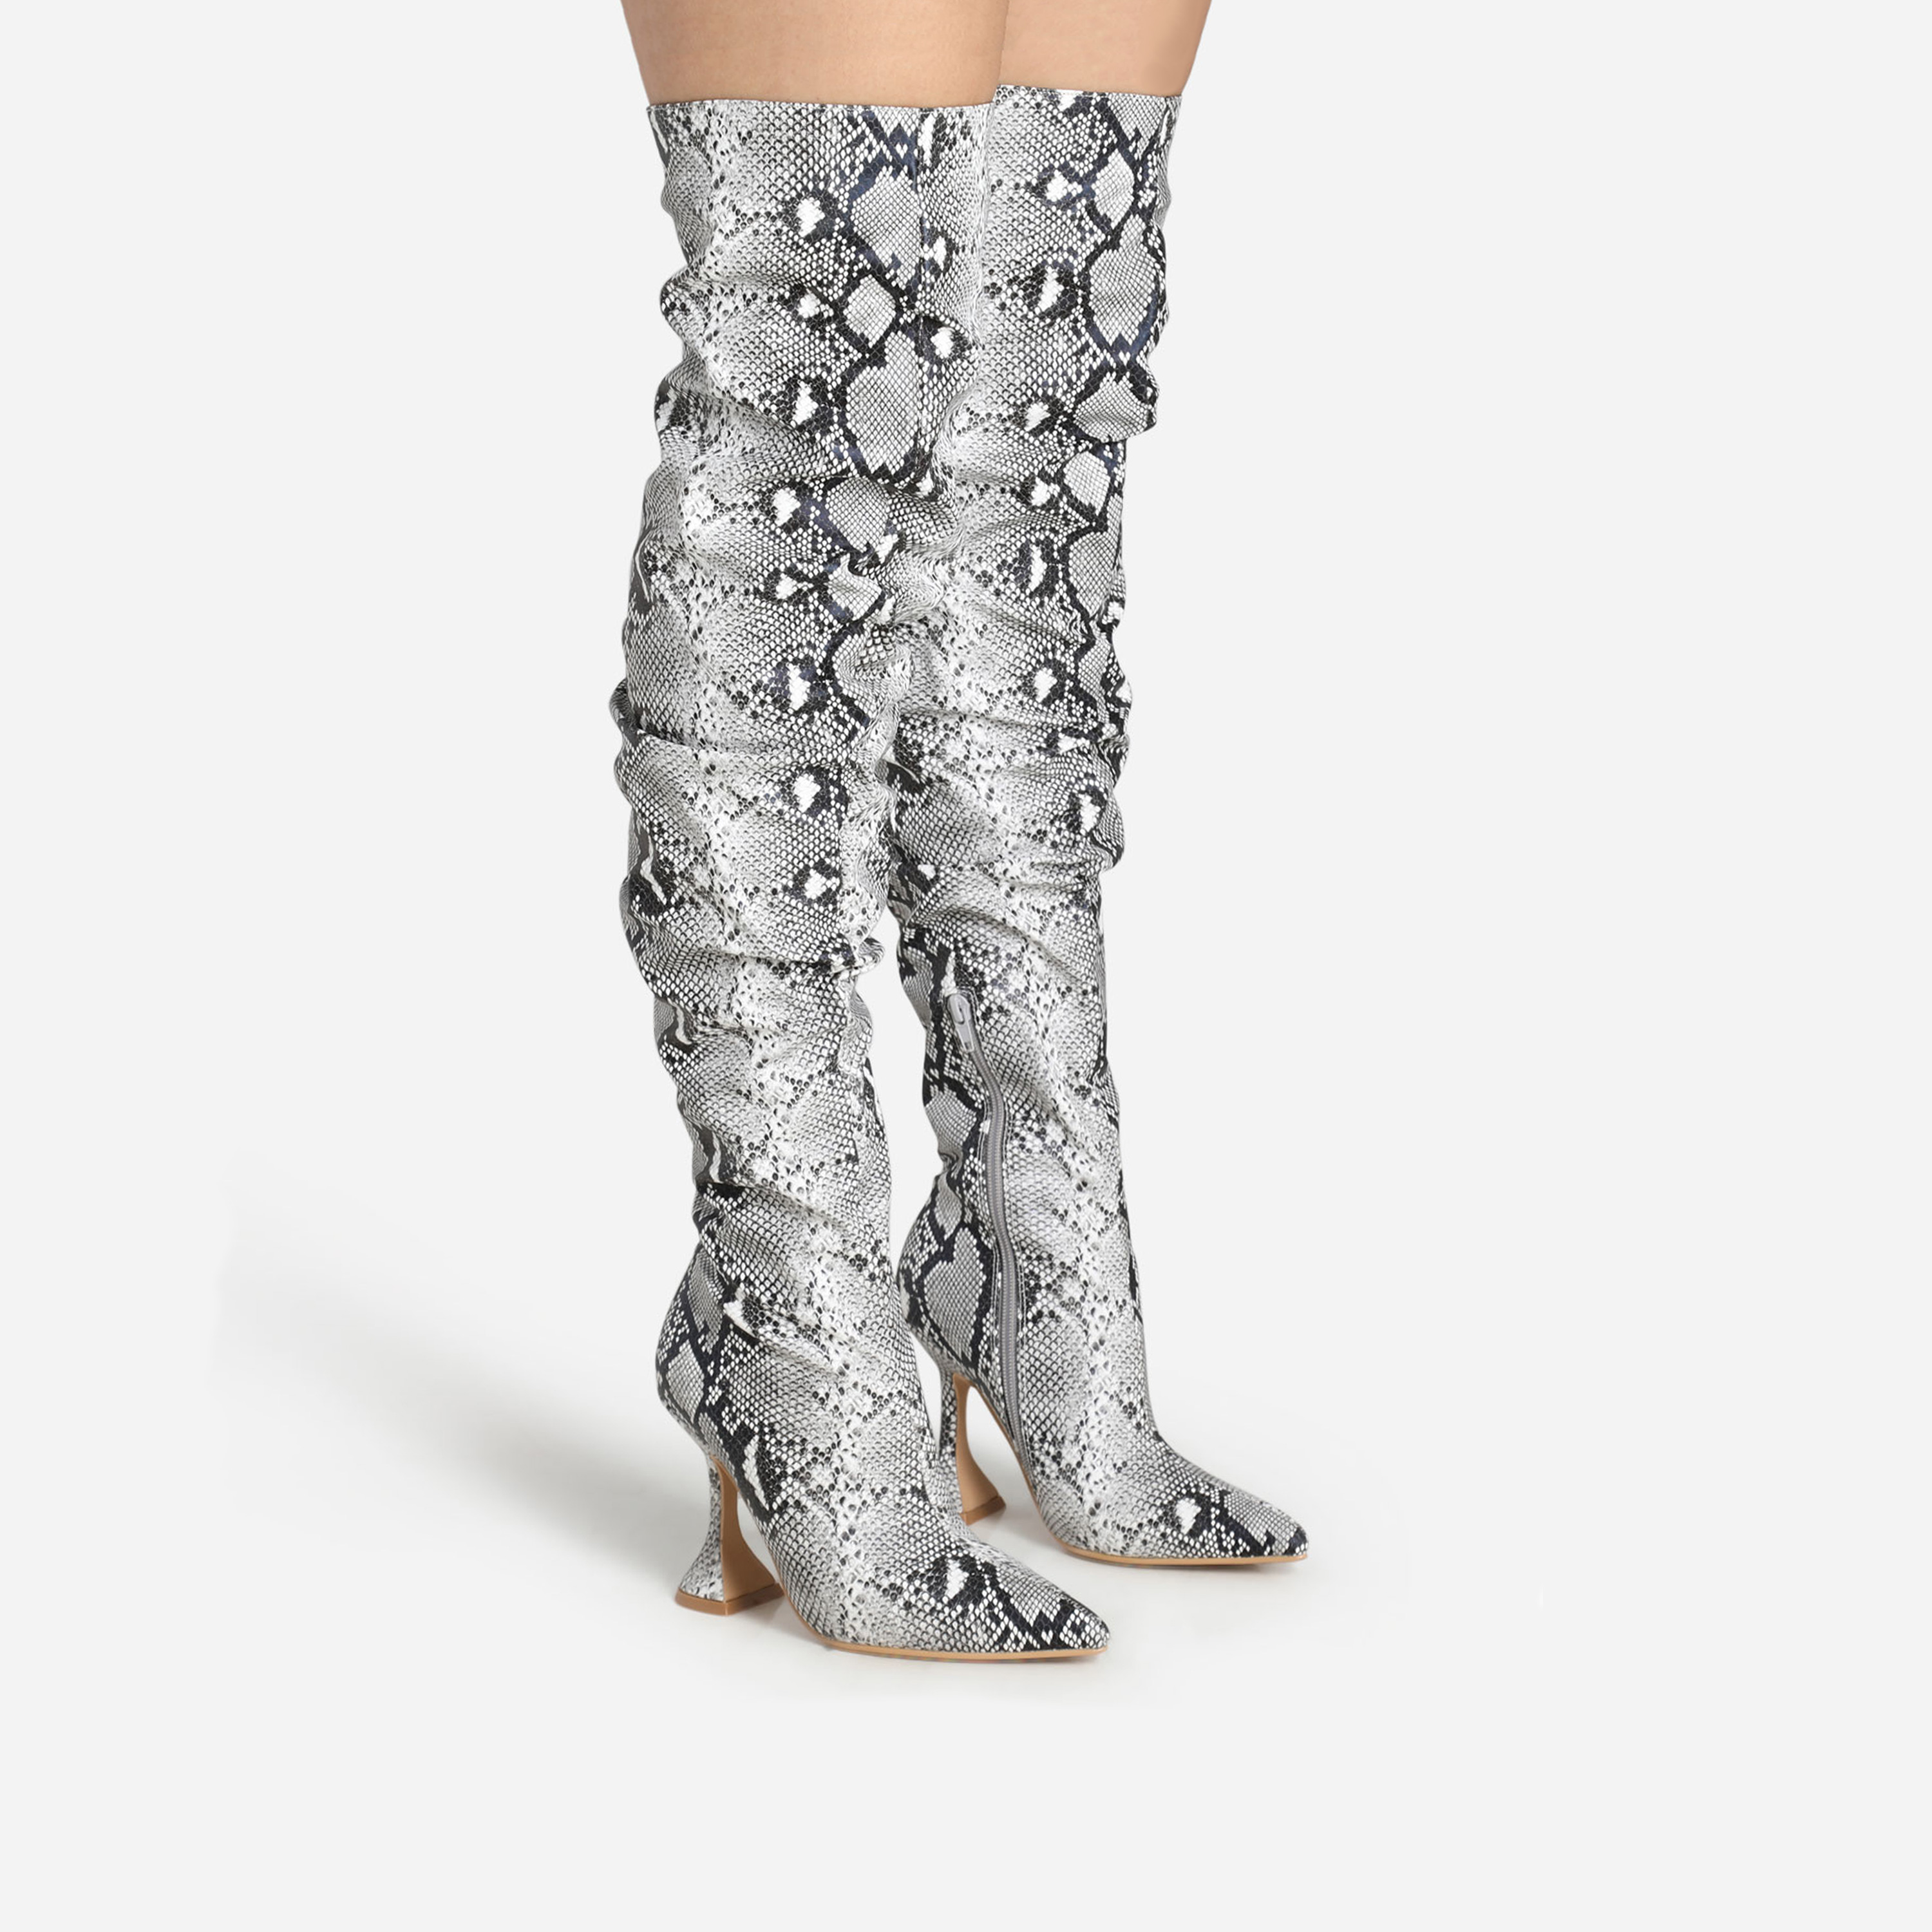 Flight Pyramid Heel Slouched Over The Knee Thigh High Long Boot In Grey Snake Print Faux Leather